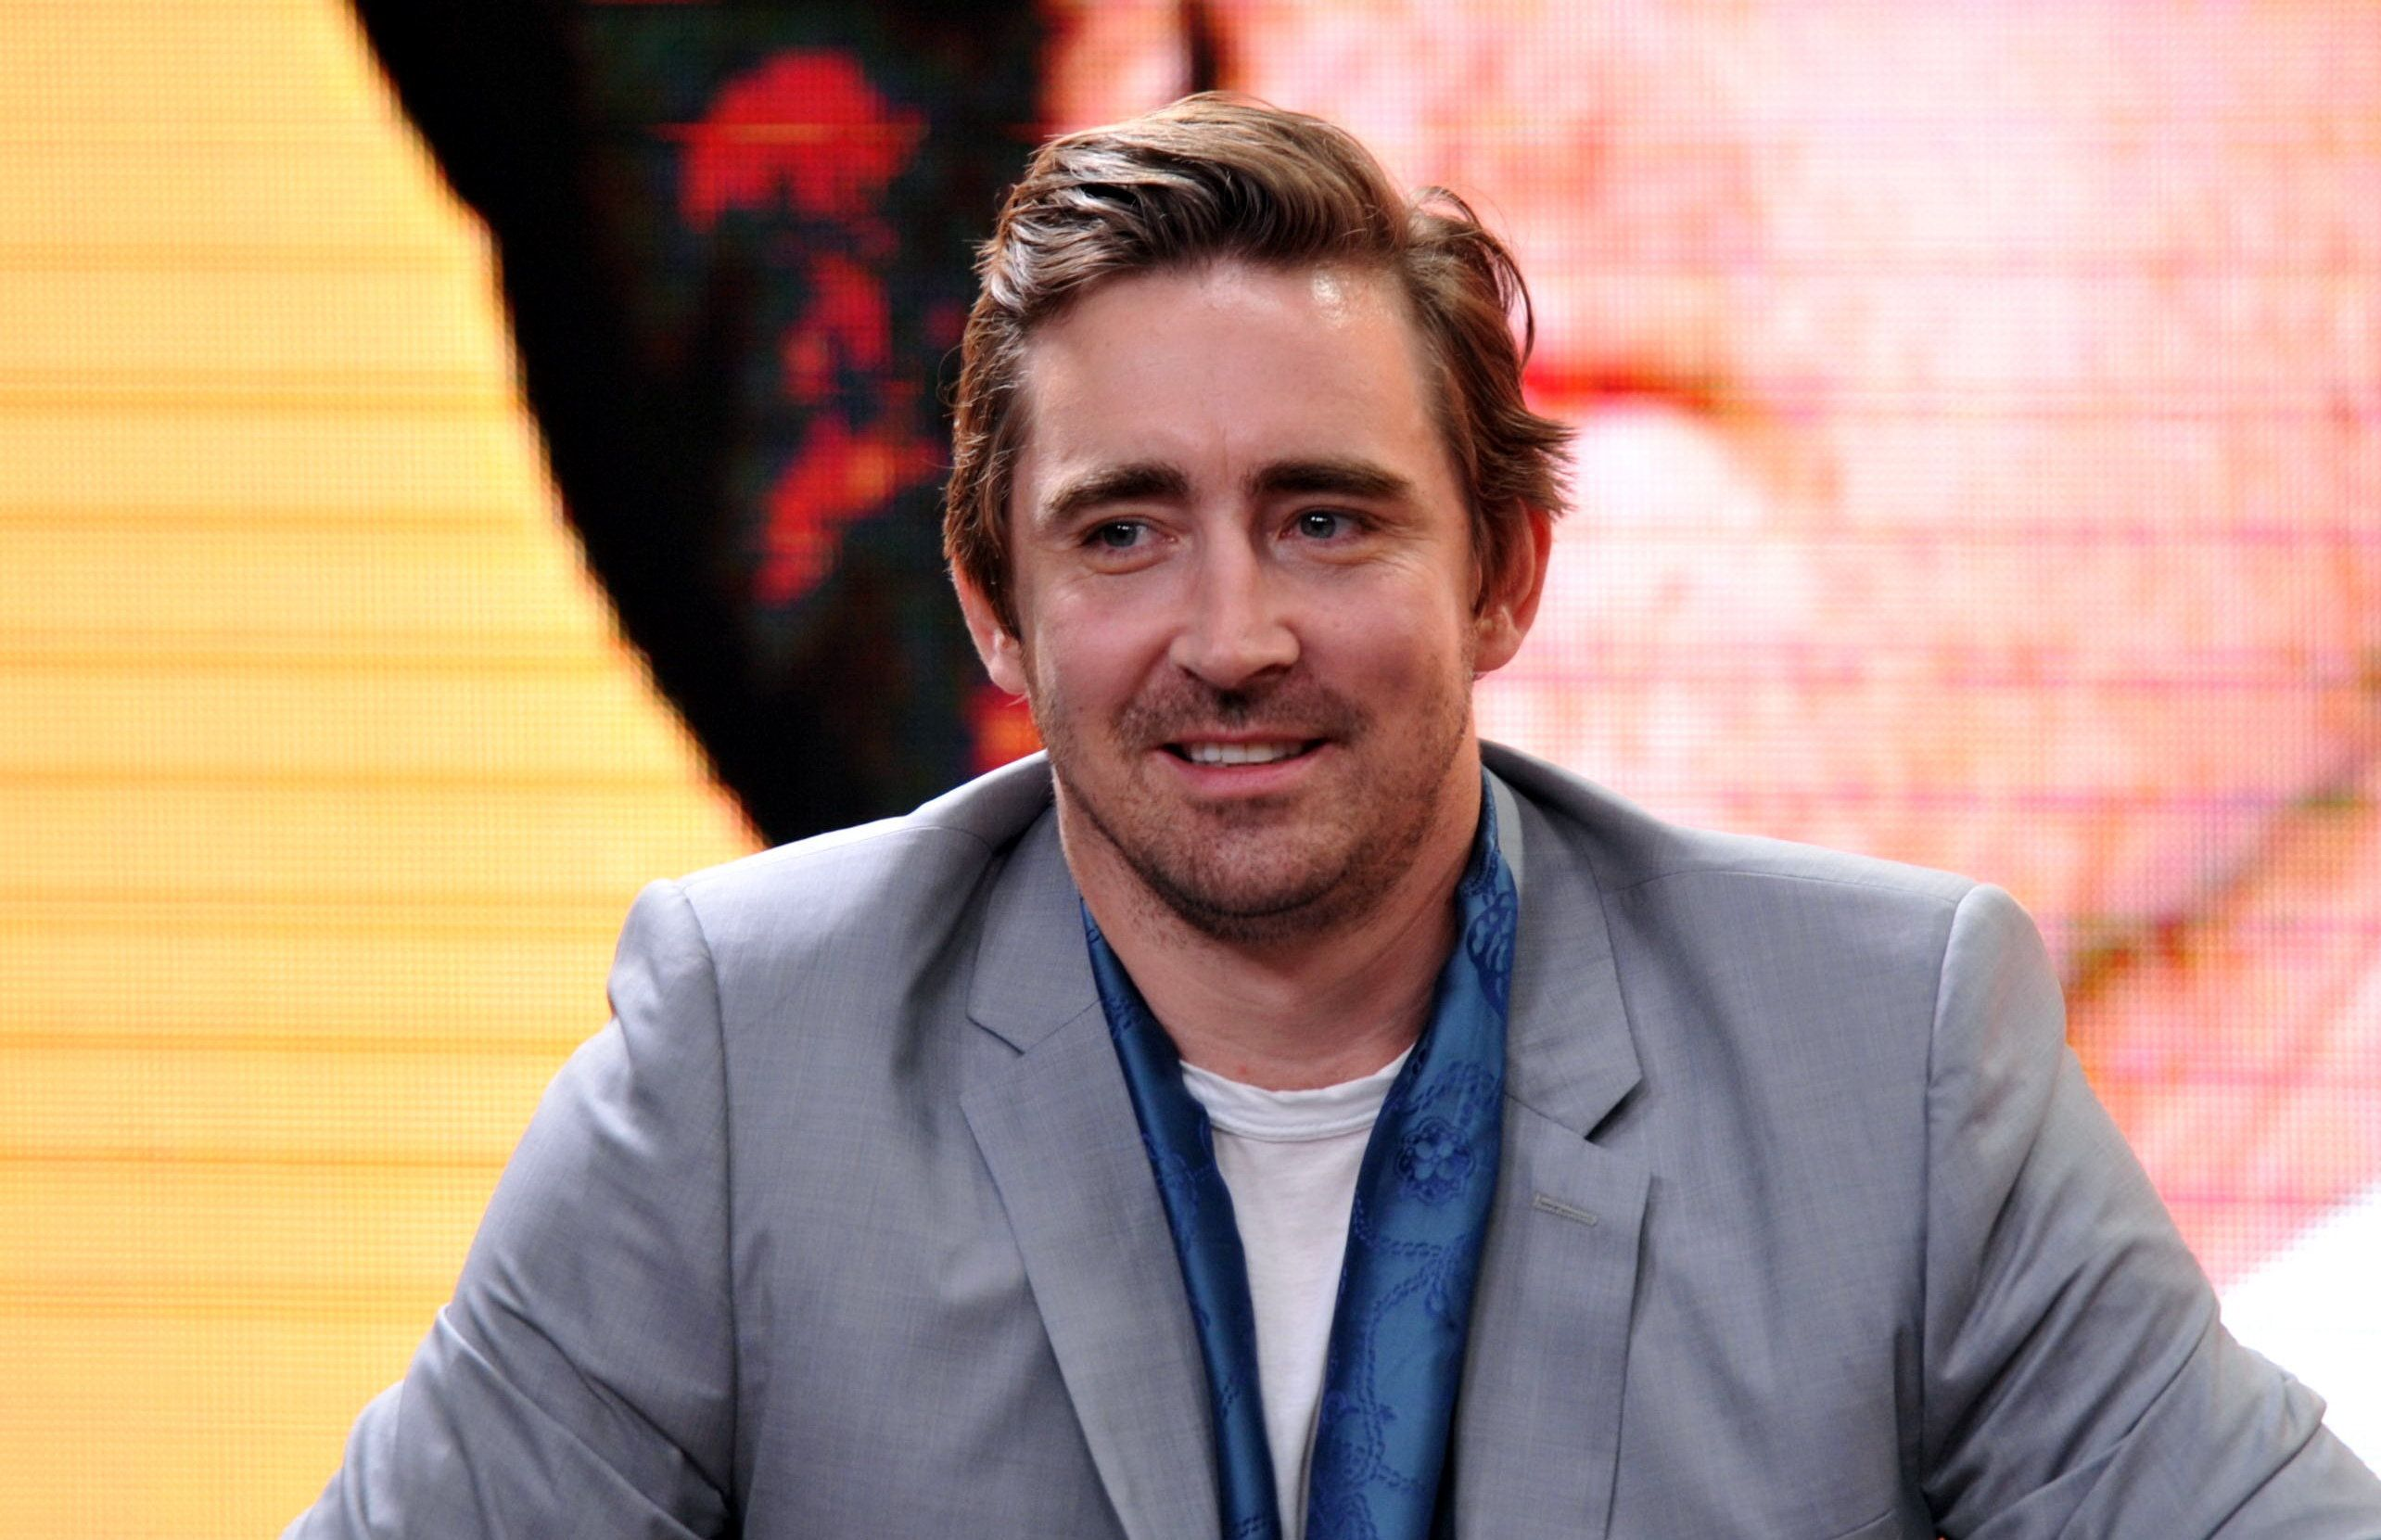 'The Hobbit' Actor Lee Pace Discusses His Sexuality In Awkward